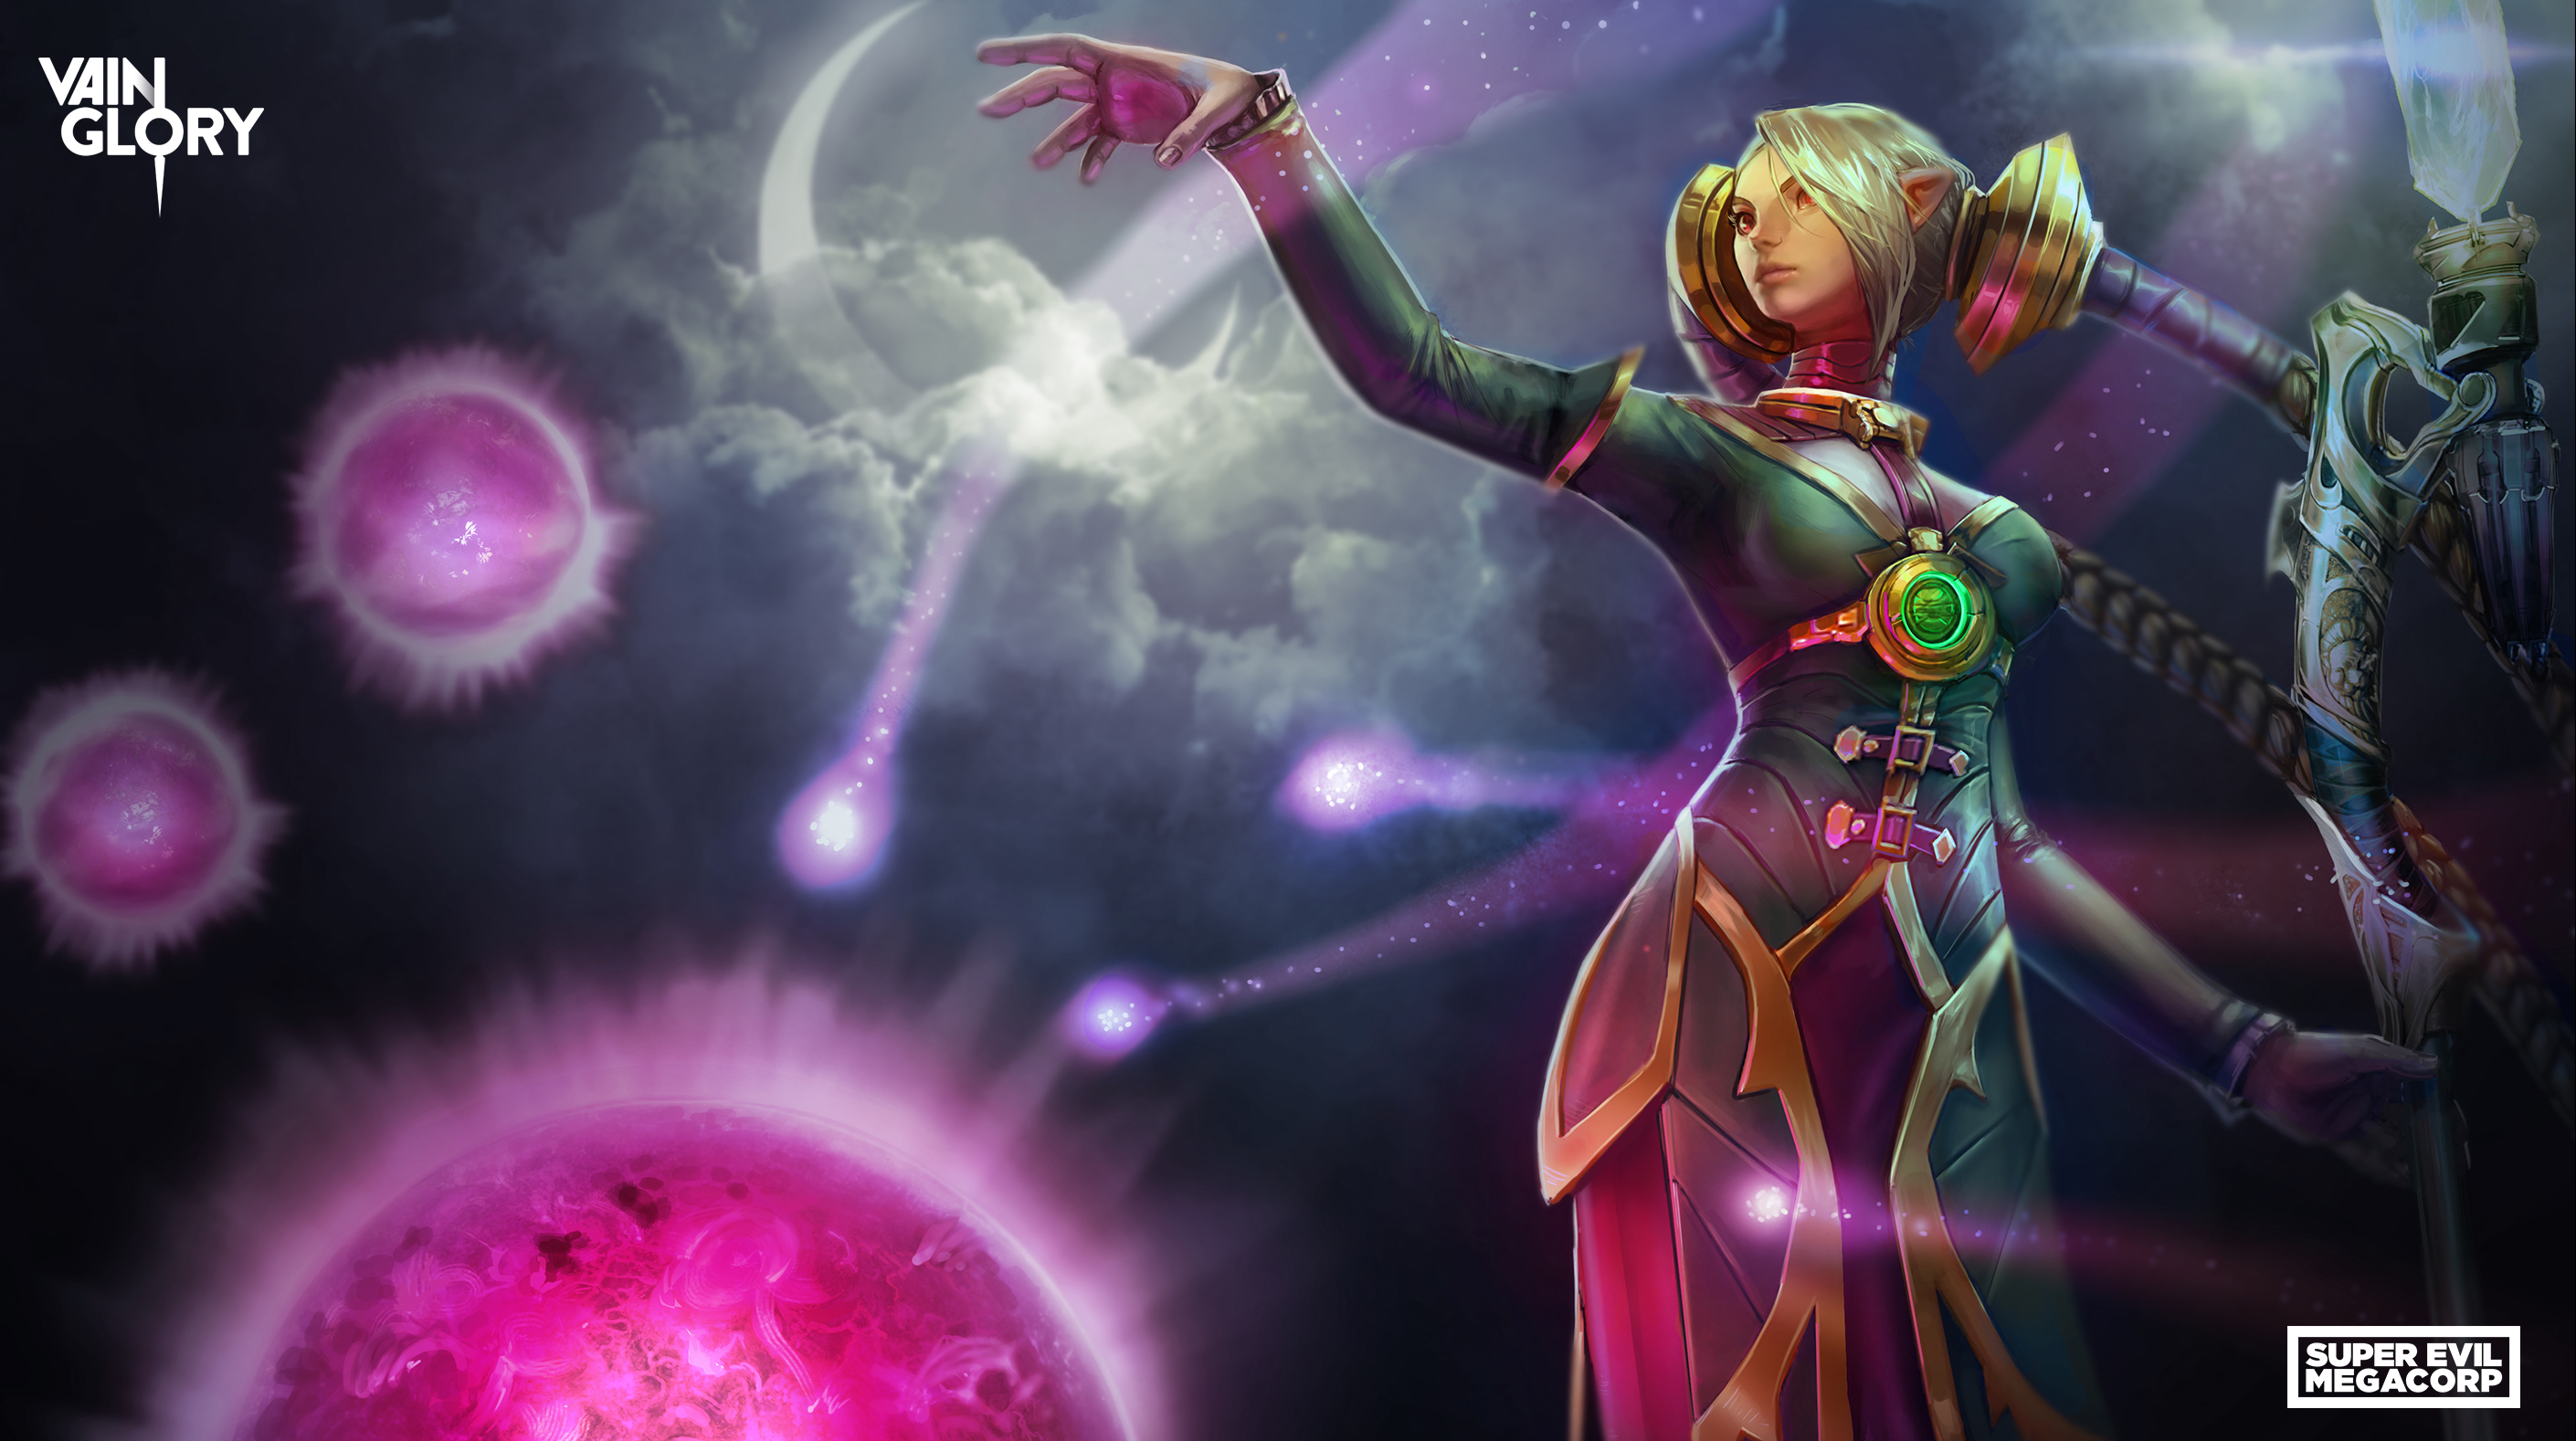 Vainglory's newest character Celeste launches a storm of stars across the world at enemies